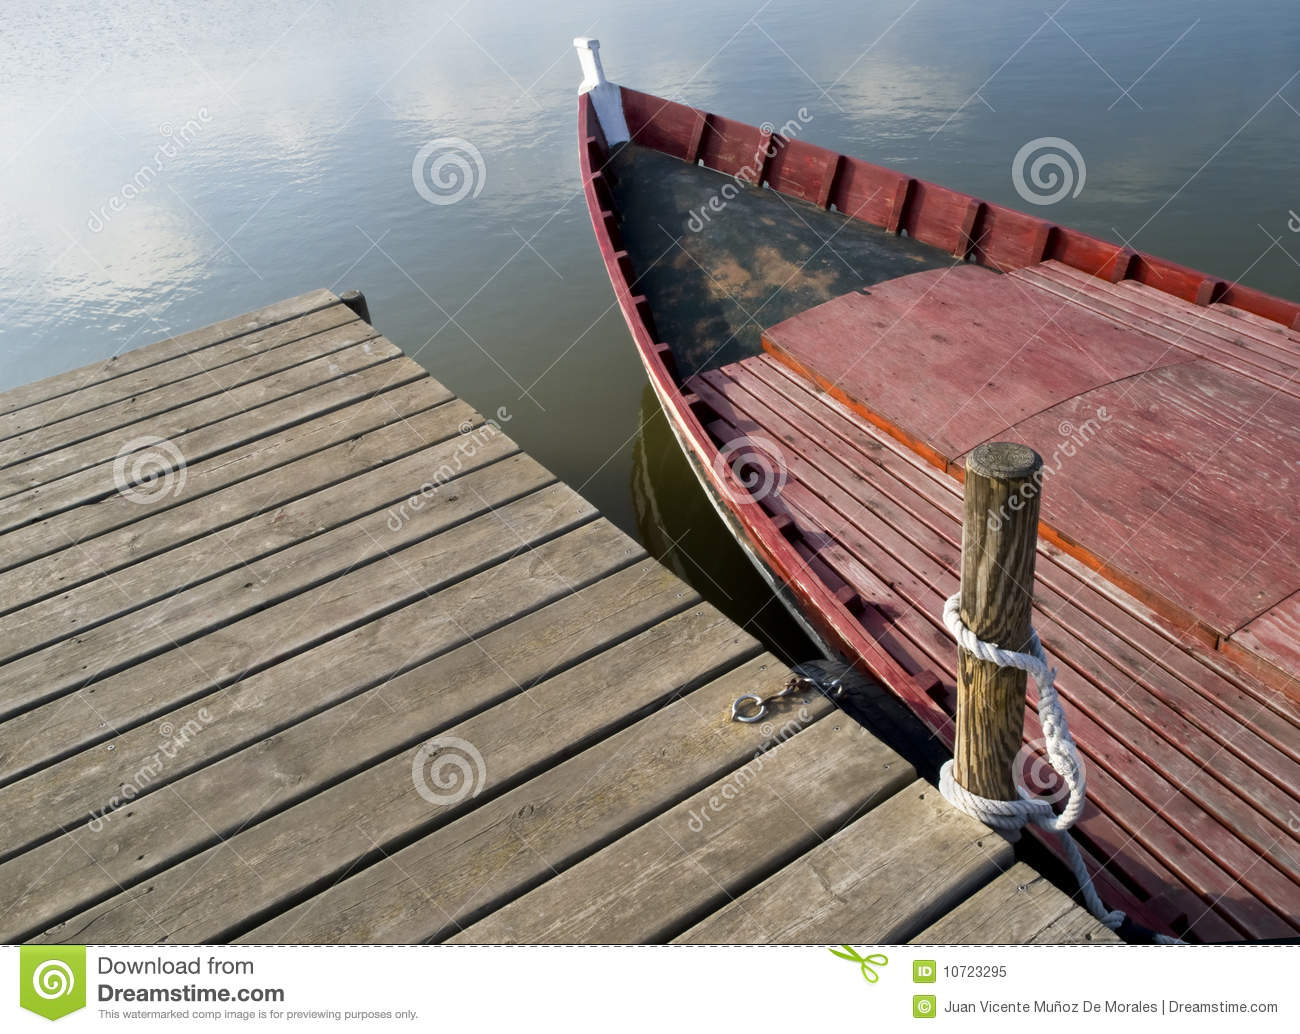 Boat And Dock Royalty Free Stock Photo - Image: 10723295